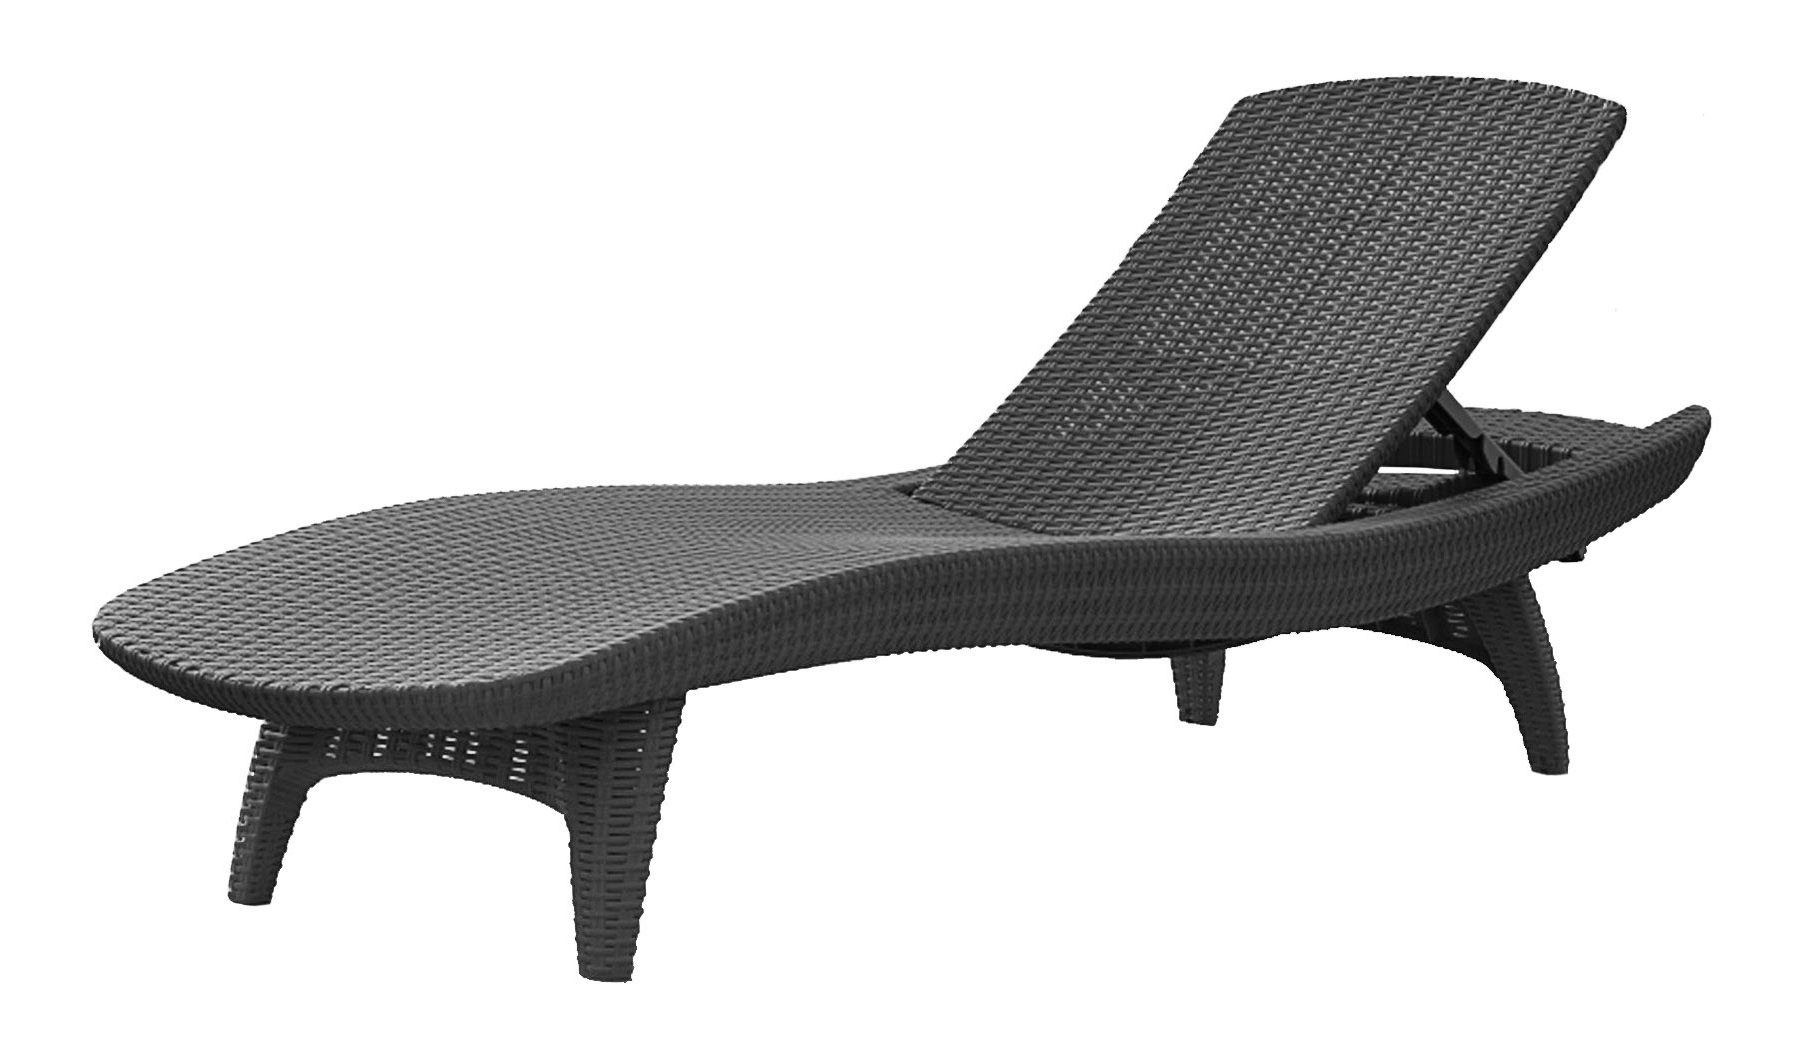 Keter Pacific Chaise Sun Lounger And Side Table Set, Charcoal For Favorite Keter Chaise Lounges (Gallery 2 of 15)